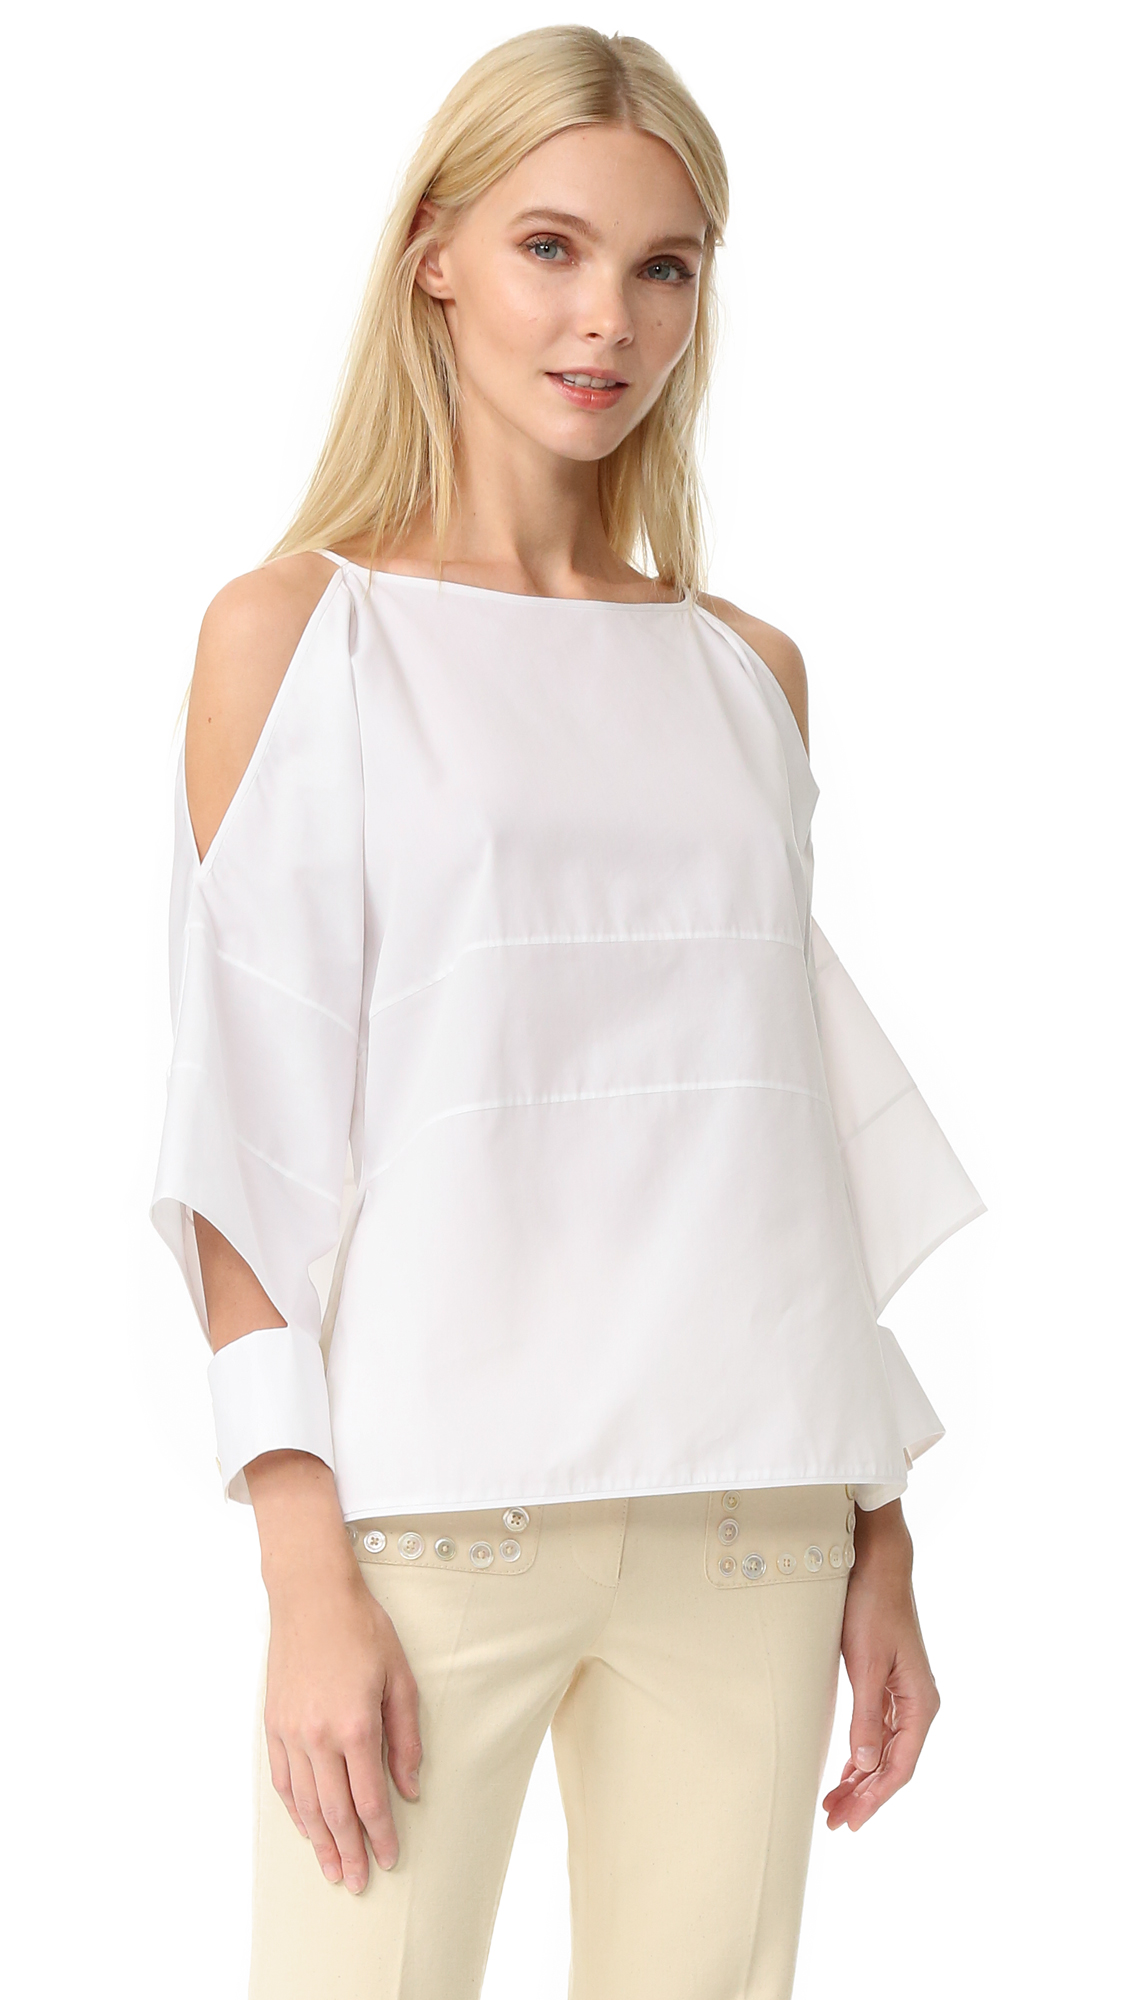 Edun Poplin Block Top - White at Shopbop